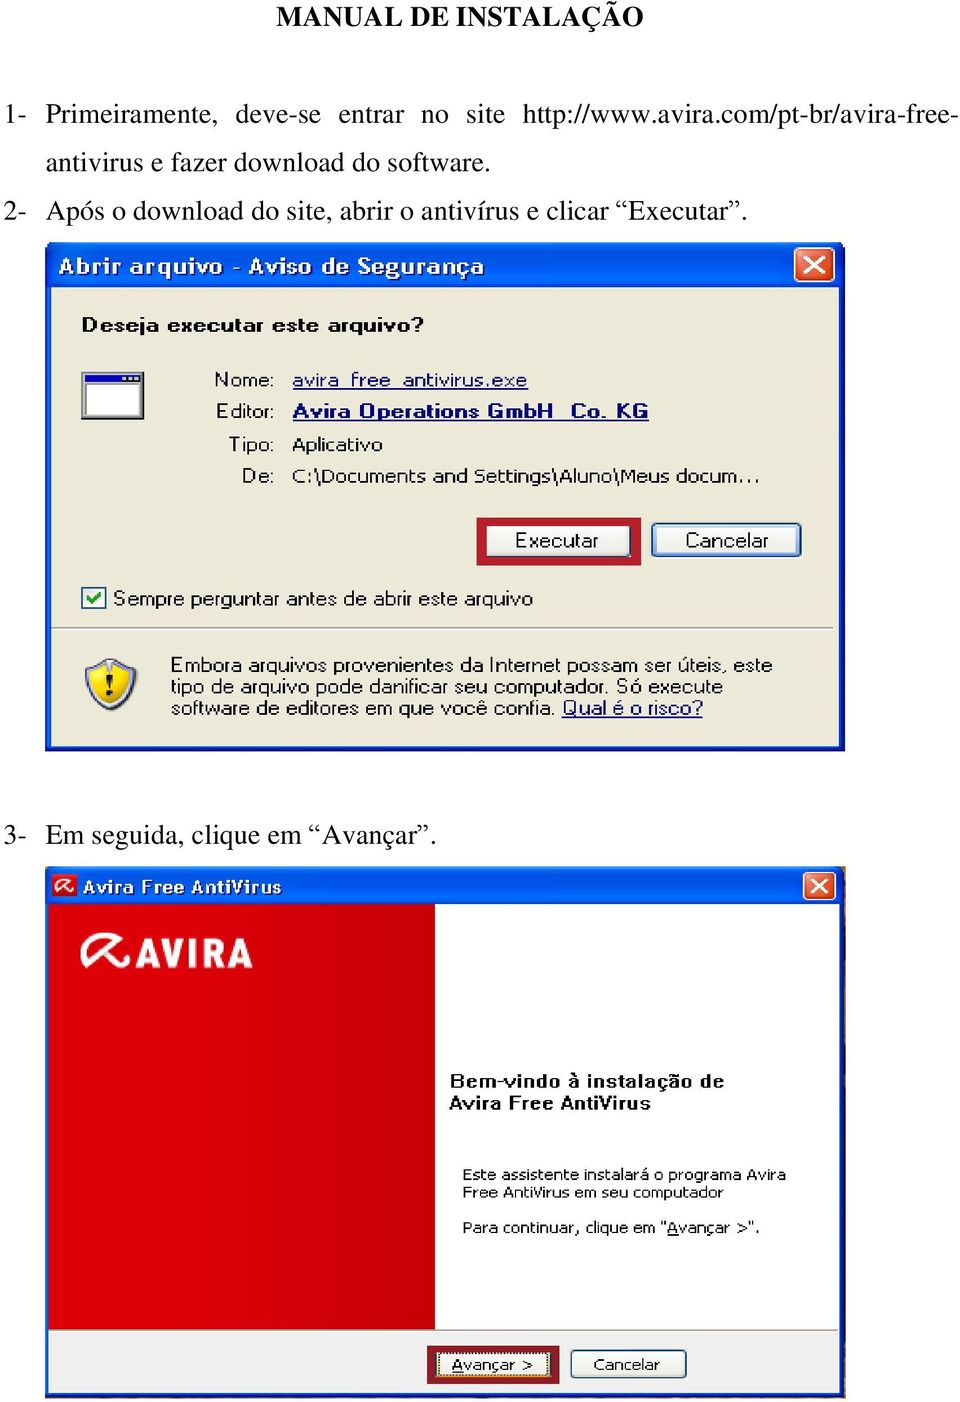 com/pt-br/avira-freeantivirus e fazer download do software.